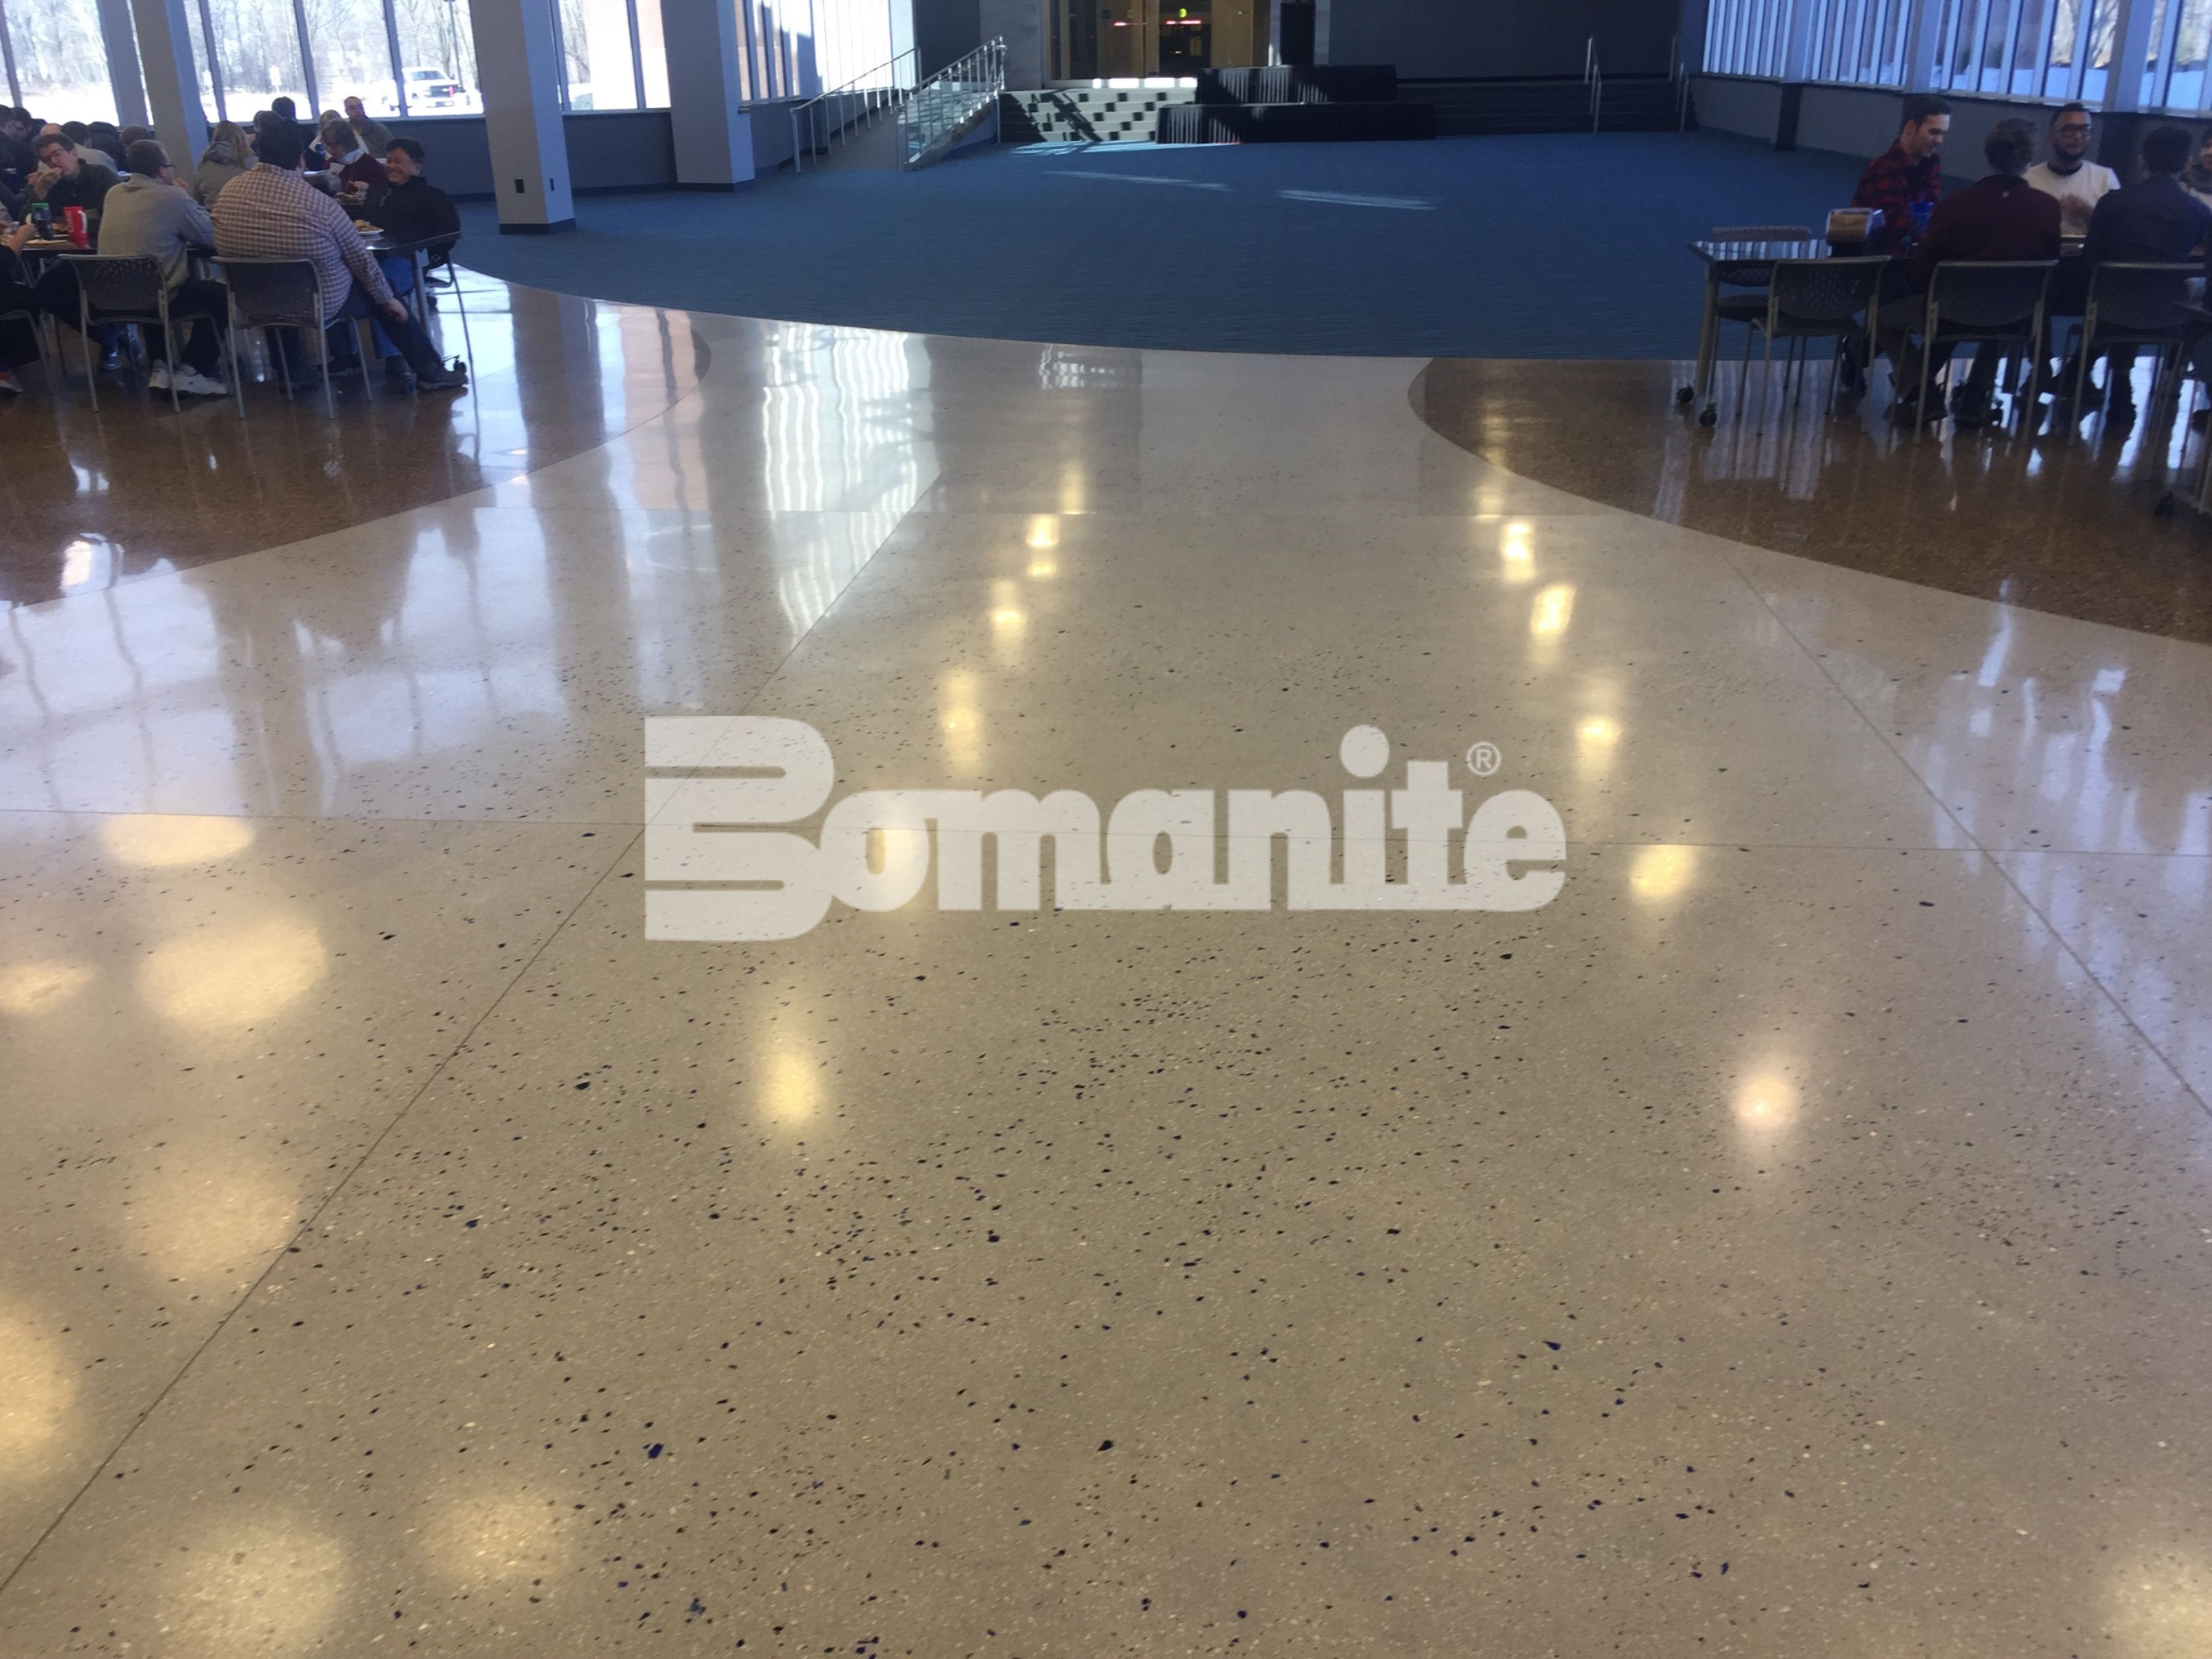 Common Areas at Infinite Campus in Blaine, MN, featuring decorative concrete flooring with Bomanite Custom Polishing Systems using Bomanite Modena Monolithic shimmering and glistening in the sun from the aggregates and glass in the highly polished concrete.